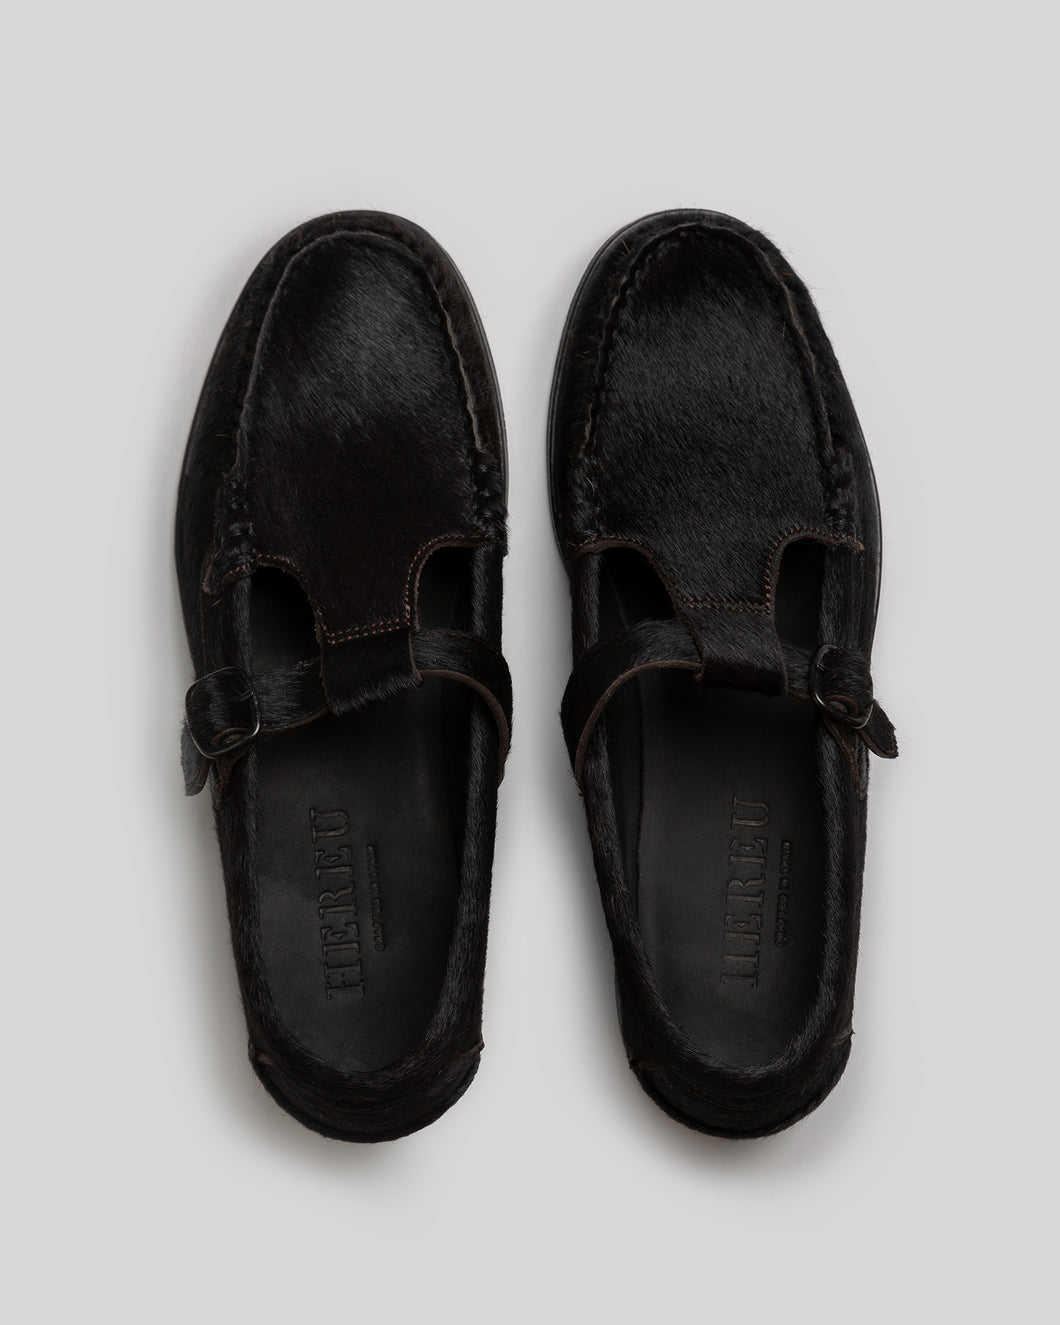 ALBER - PREORDER - Women's T-bar Loafer